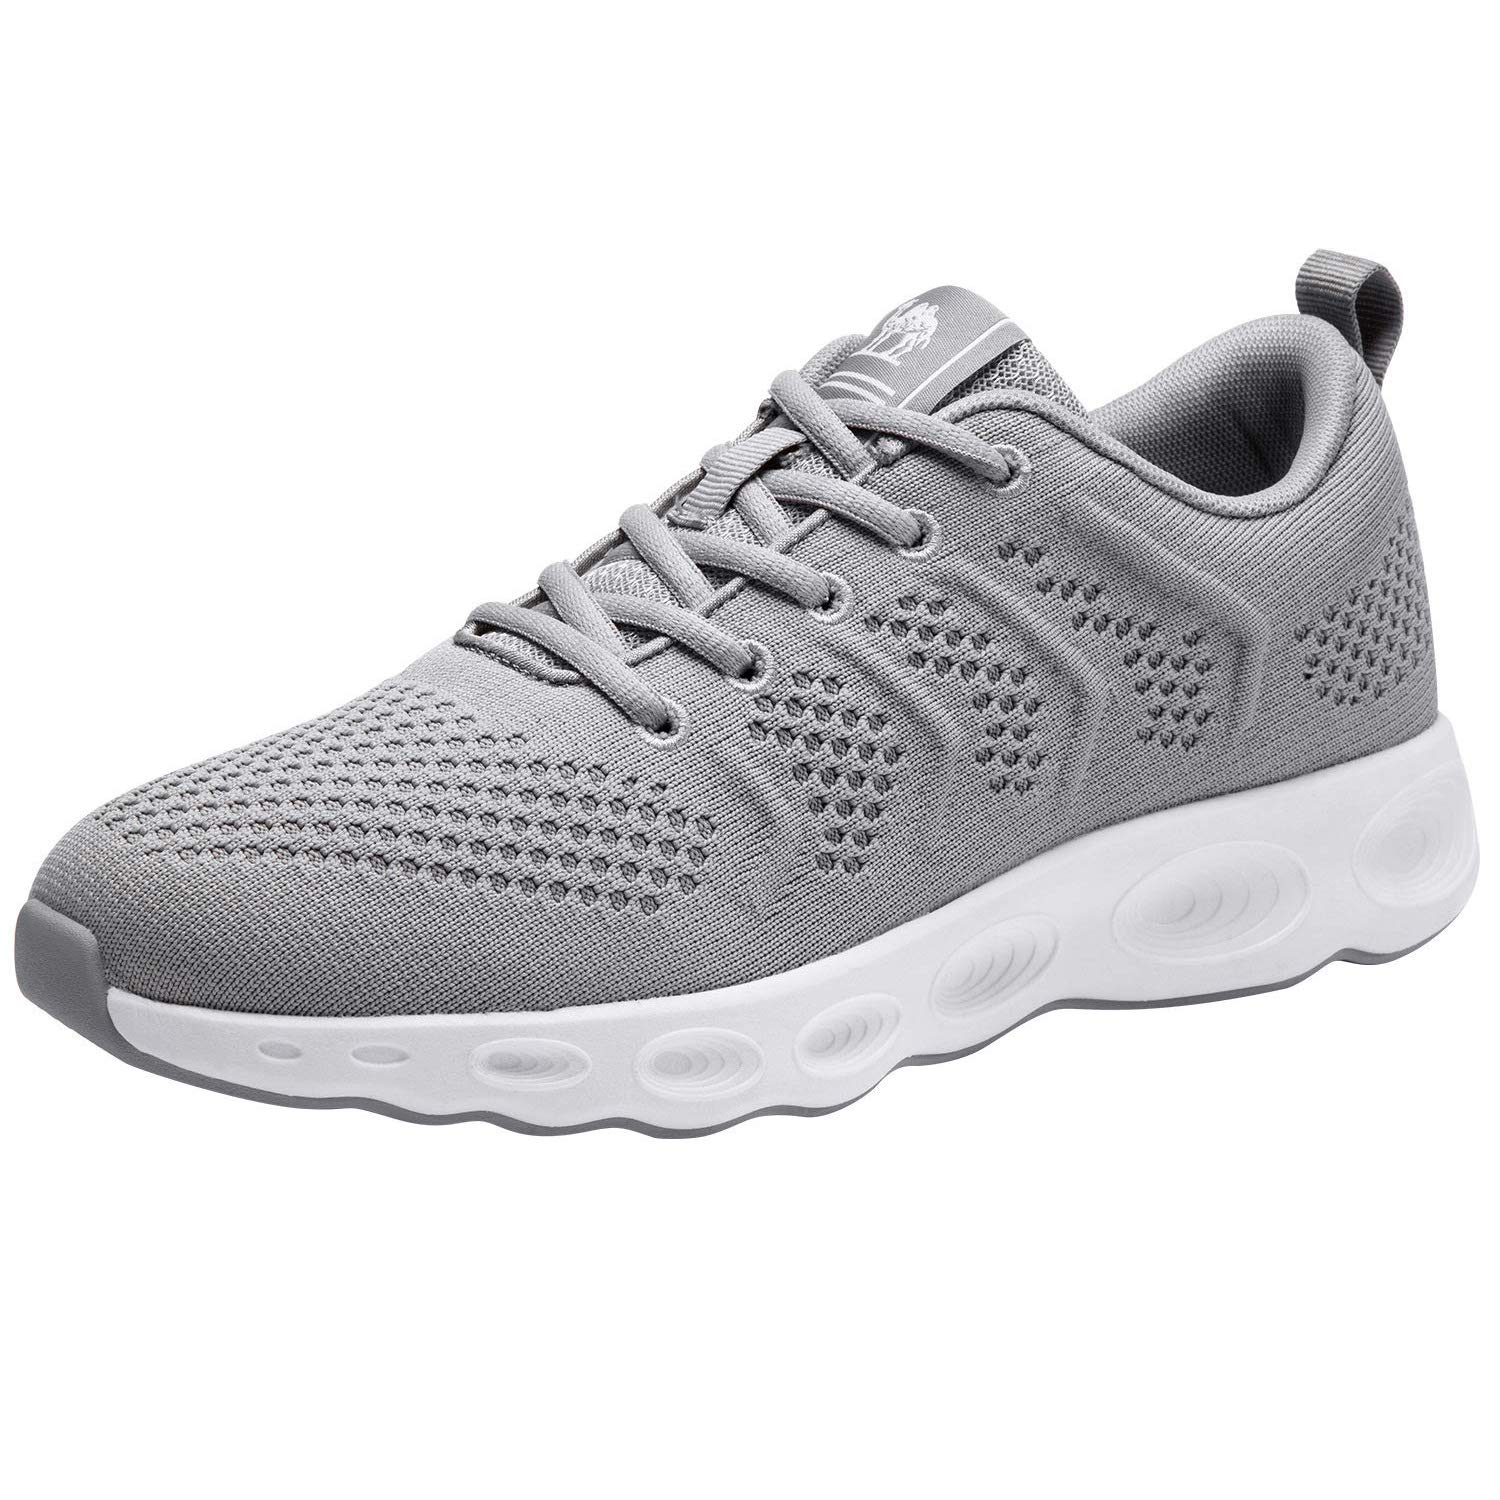 CAMEL CROWN Running Shoes Men Tennis Walking Trainning Trail Lightweight Comfortable Sneakers Athletic Gym Casual Footwear for Sports Outdoors Grey 9